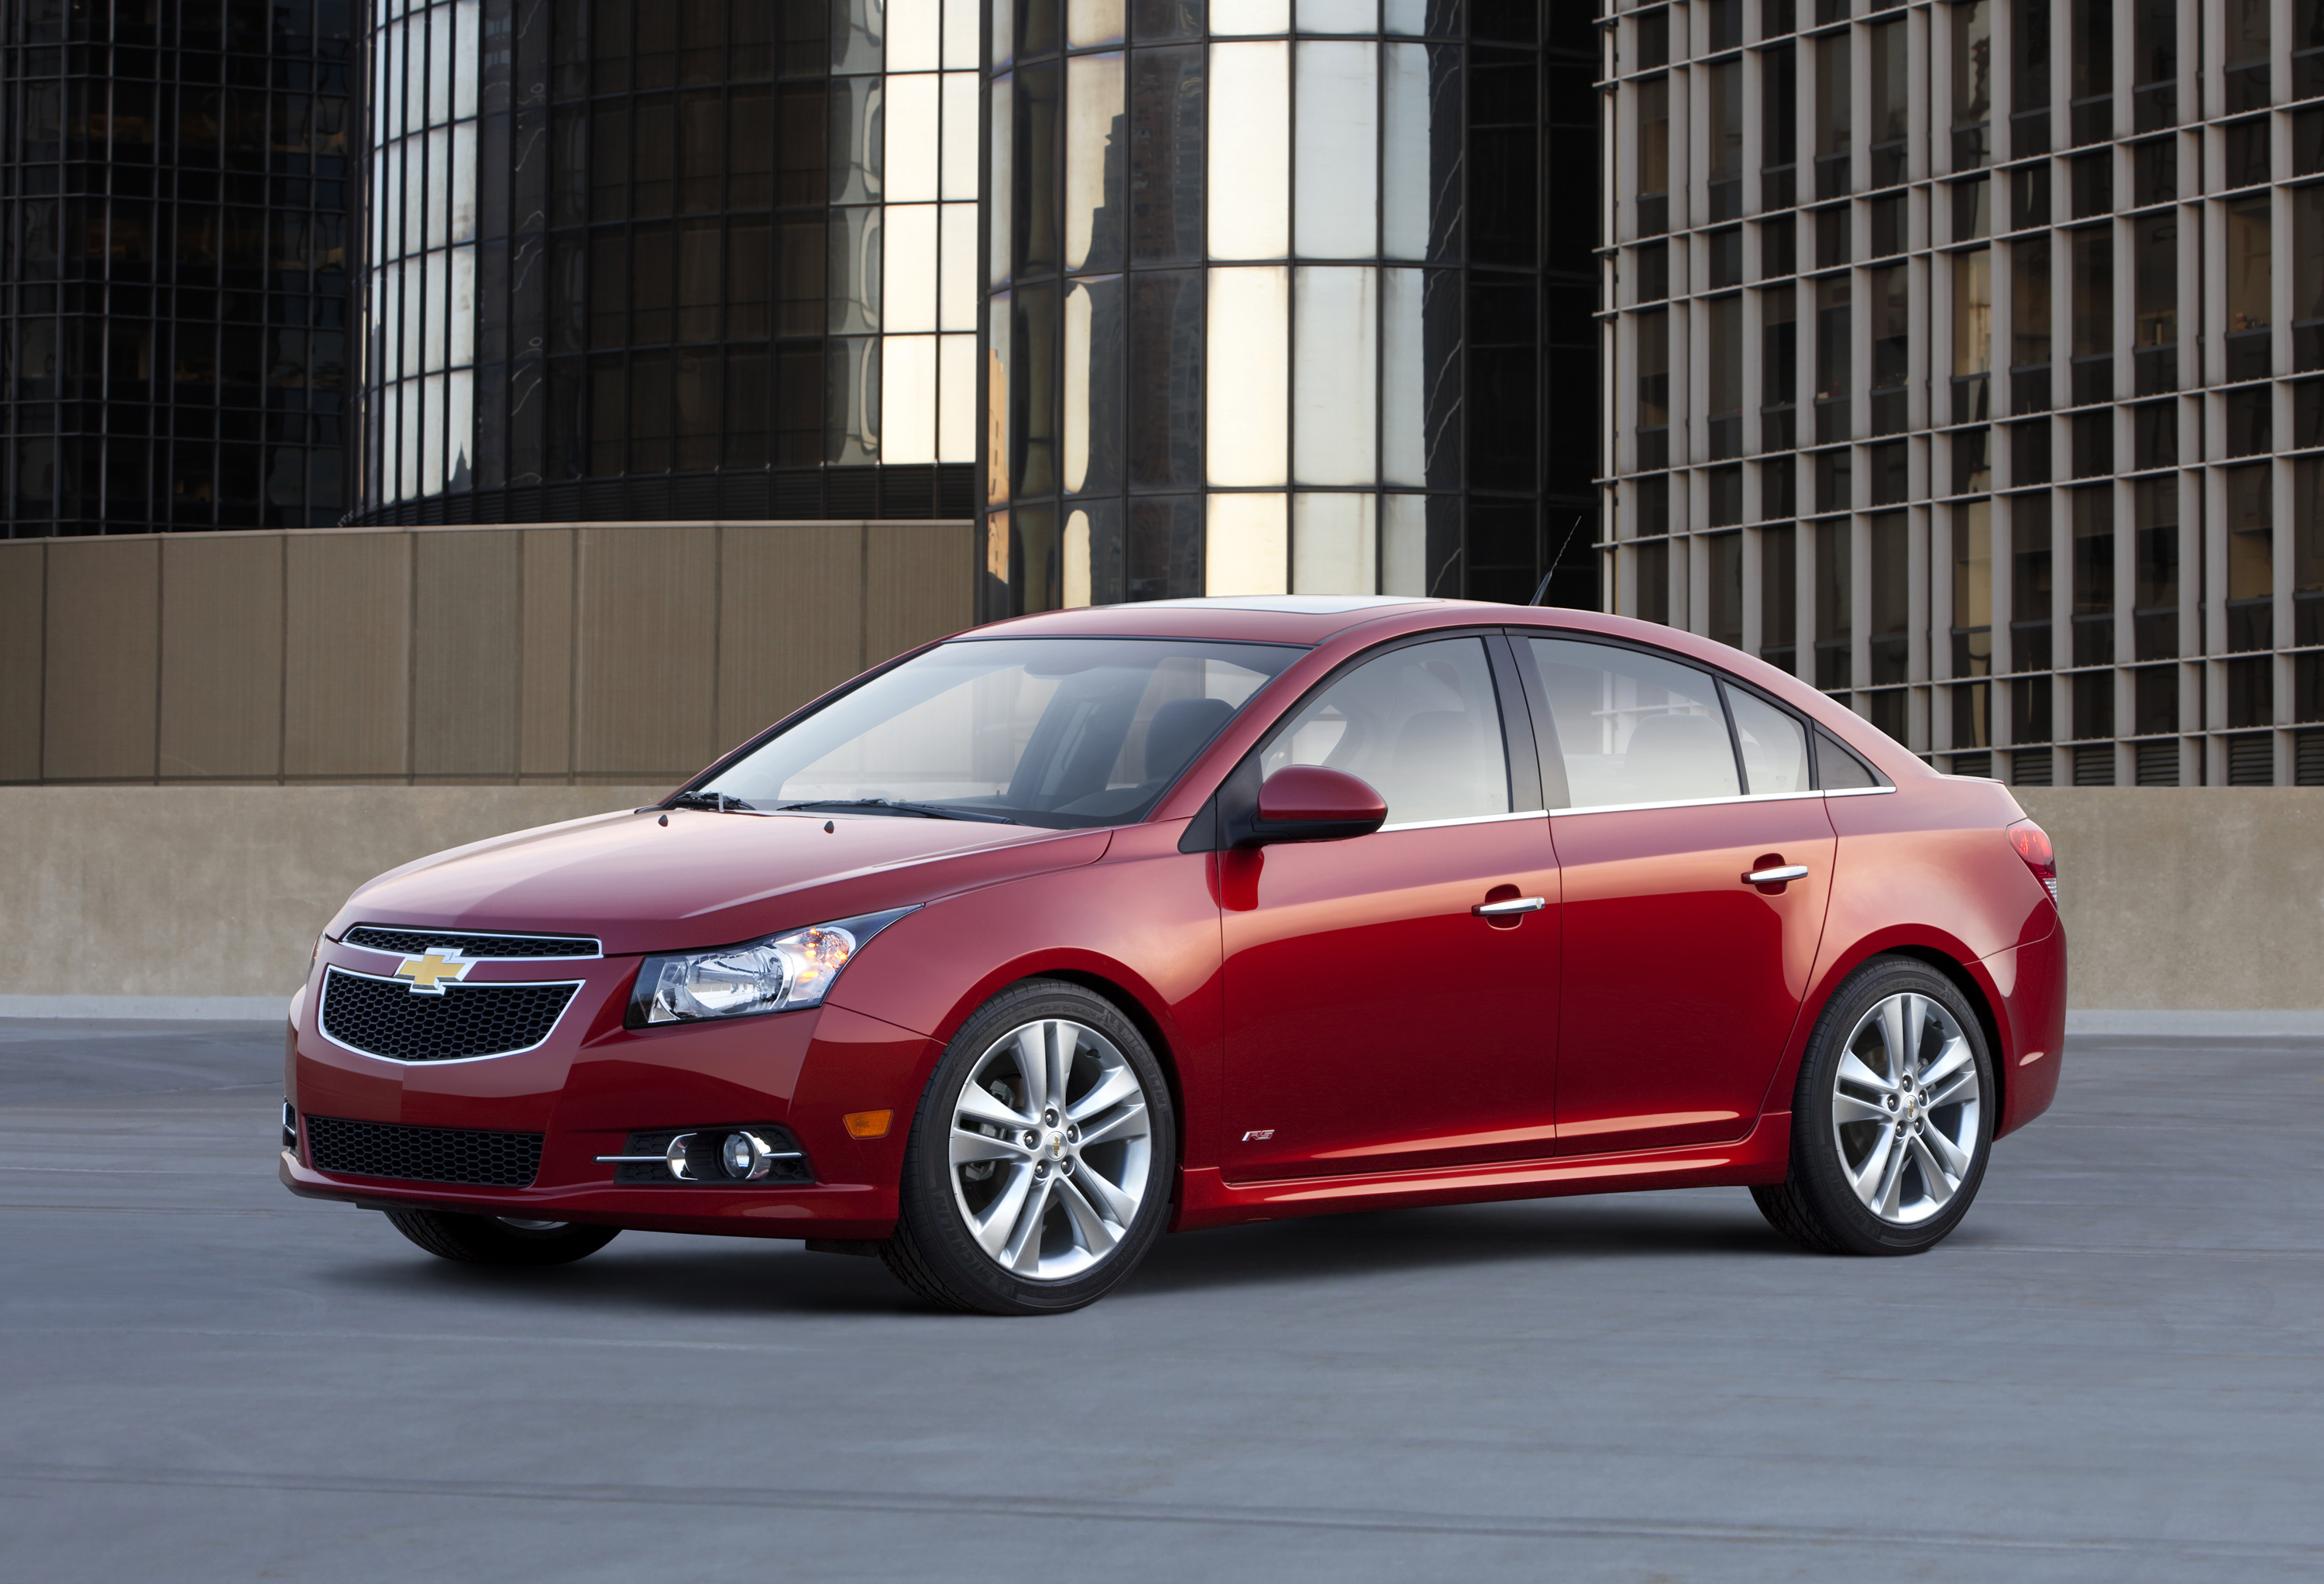 Chevrolet Cruze Owners Manual: Winter Driving